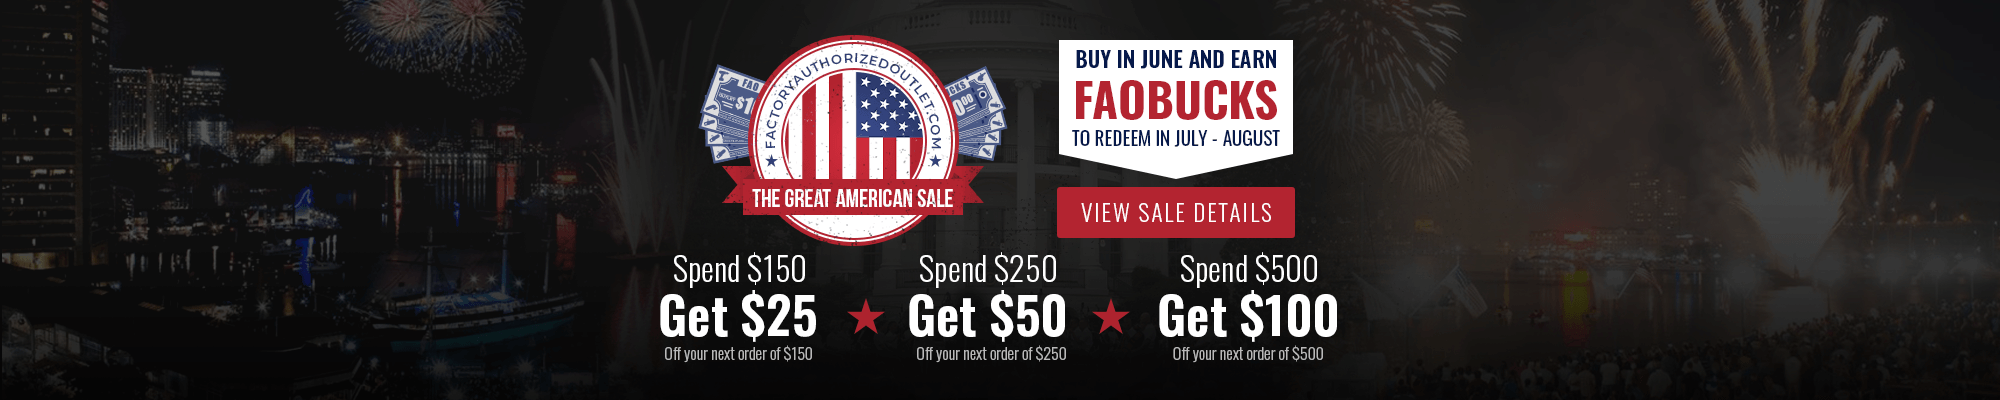 Great American Sale 2020 at factoryauthorizedoutlet.com